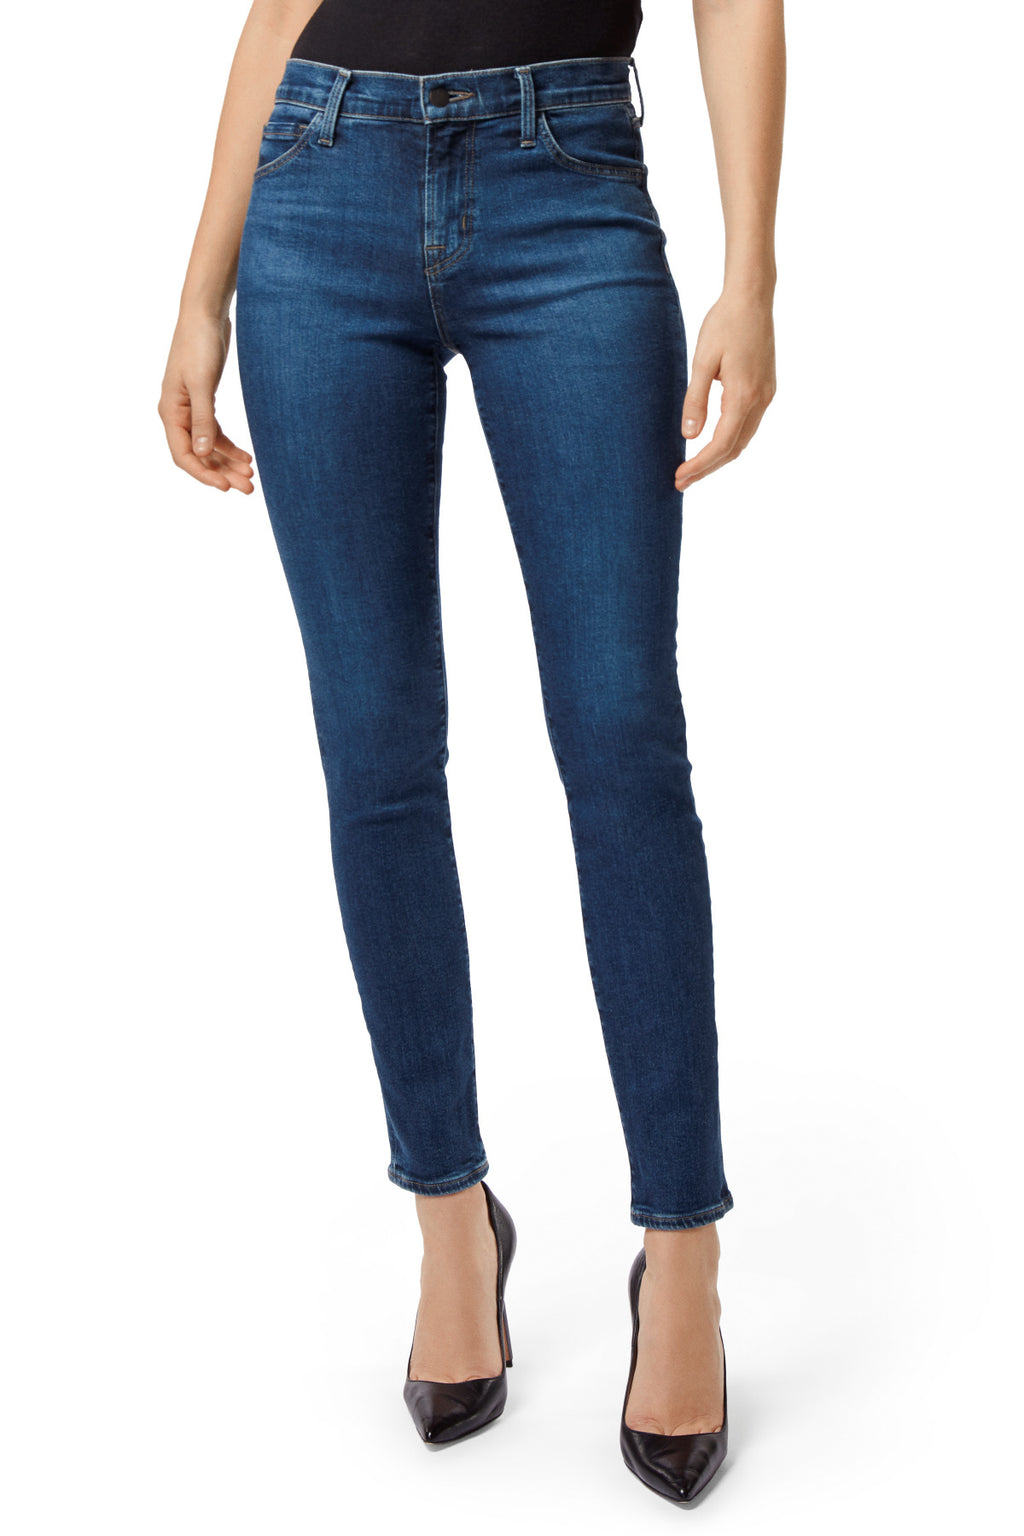 Buy 811 Mid Rise Skinny Pants from J BRAND at paya boutique